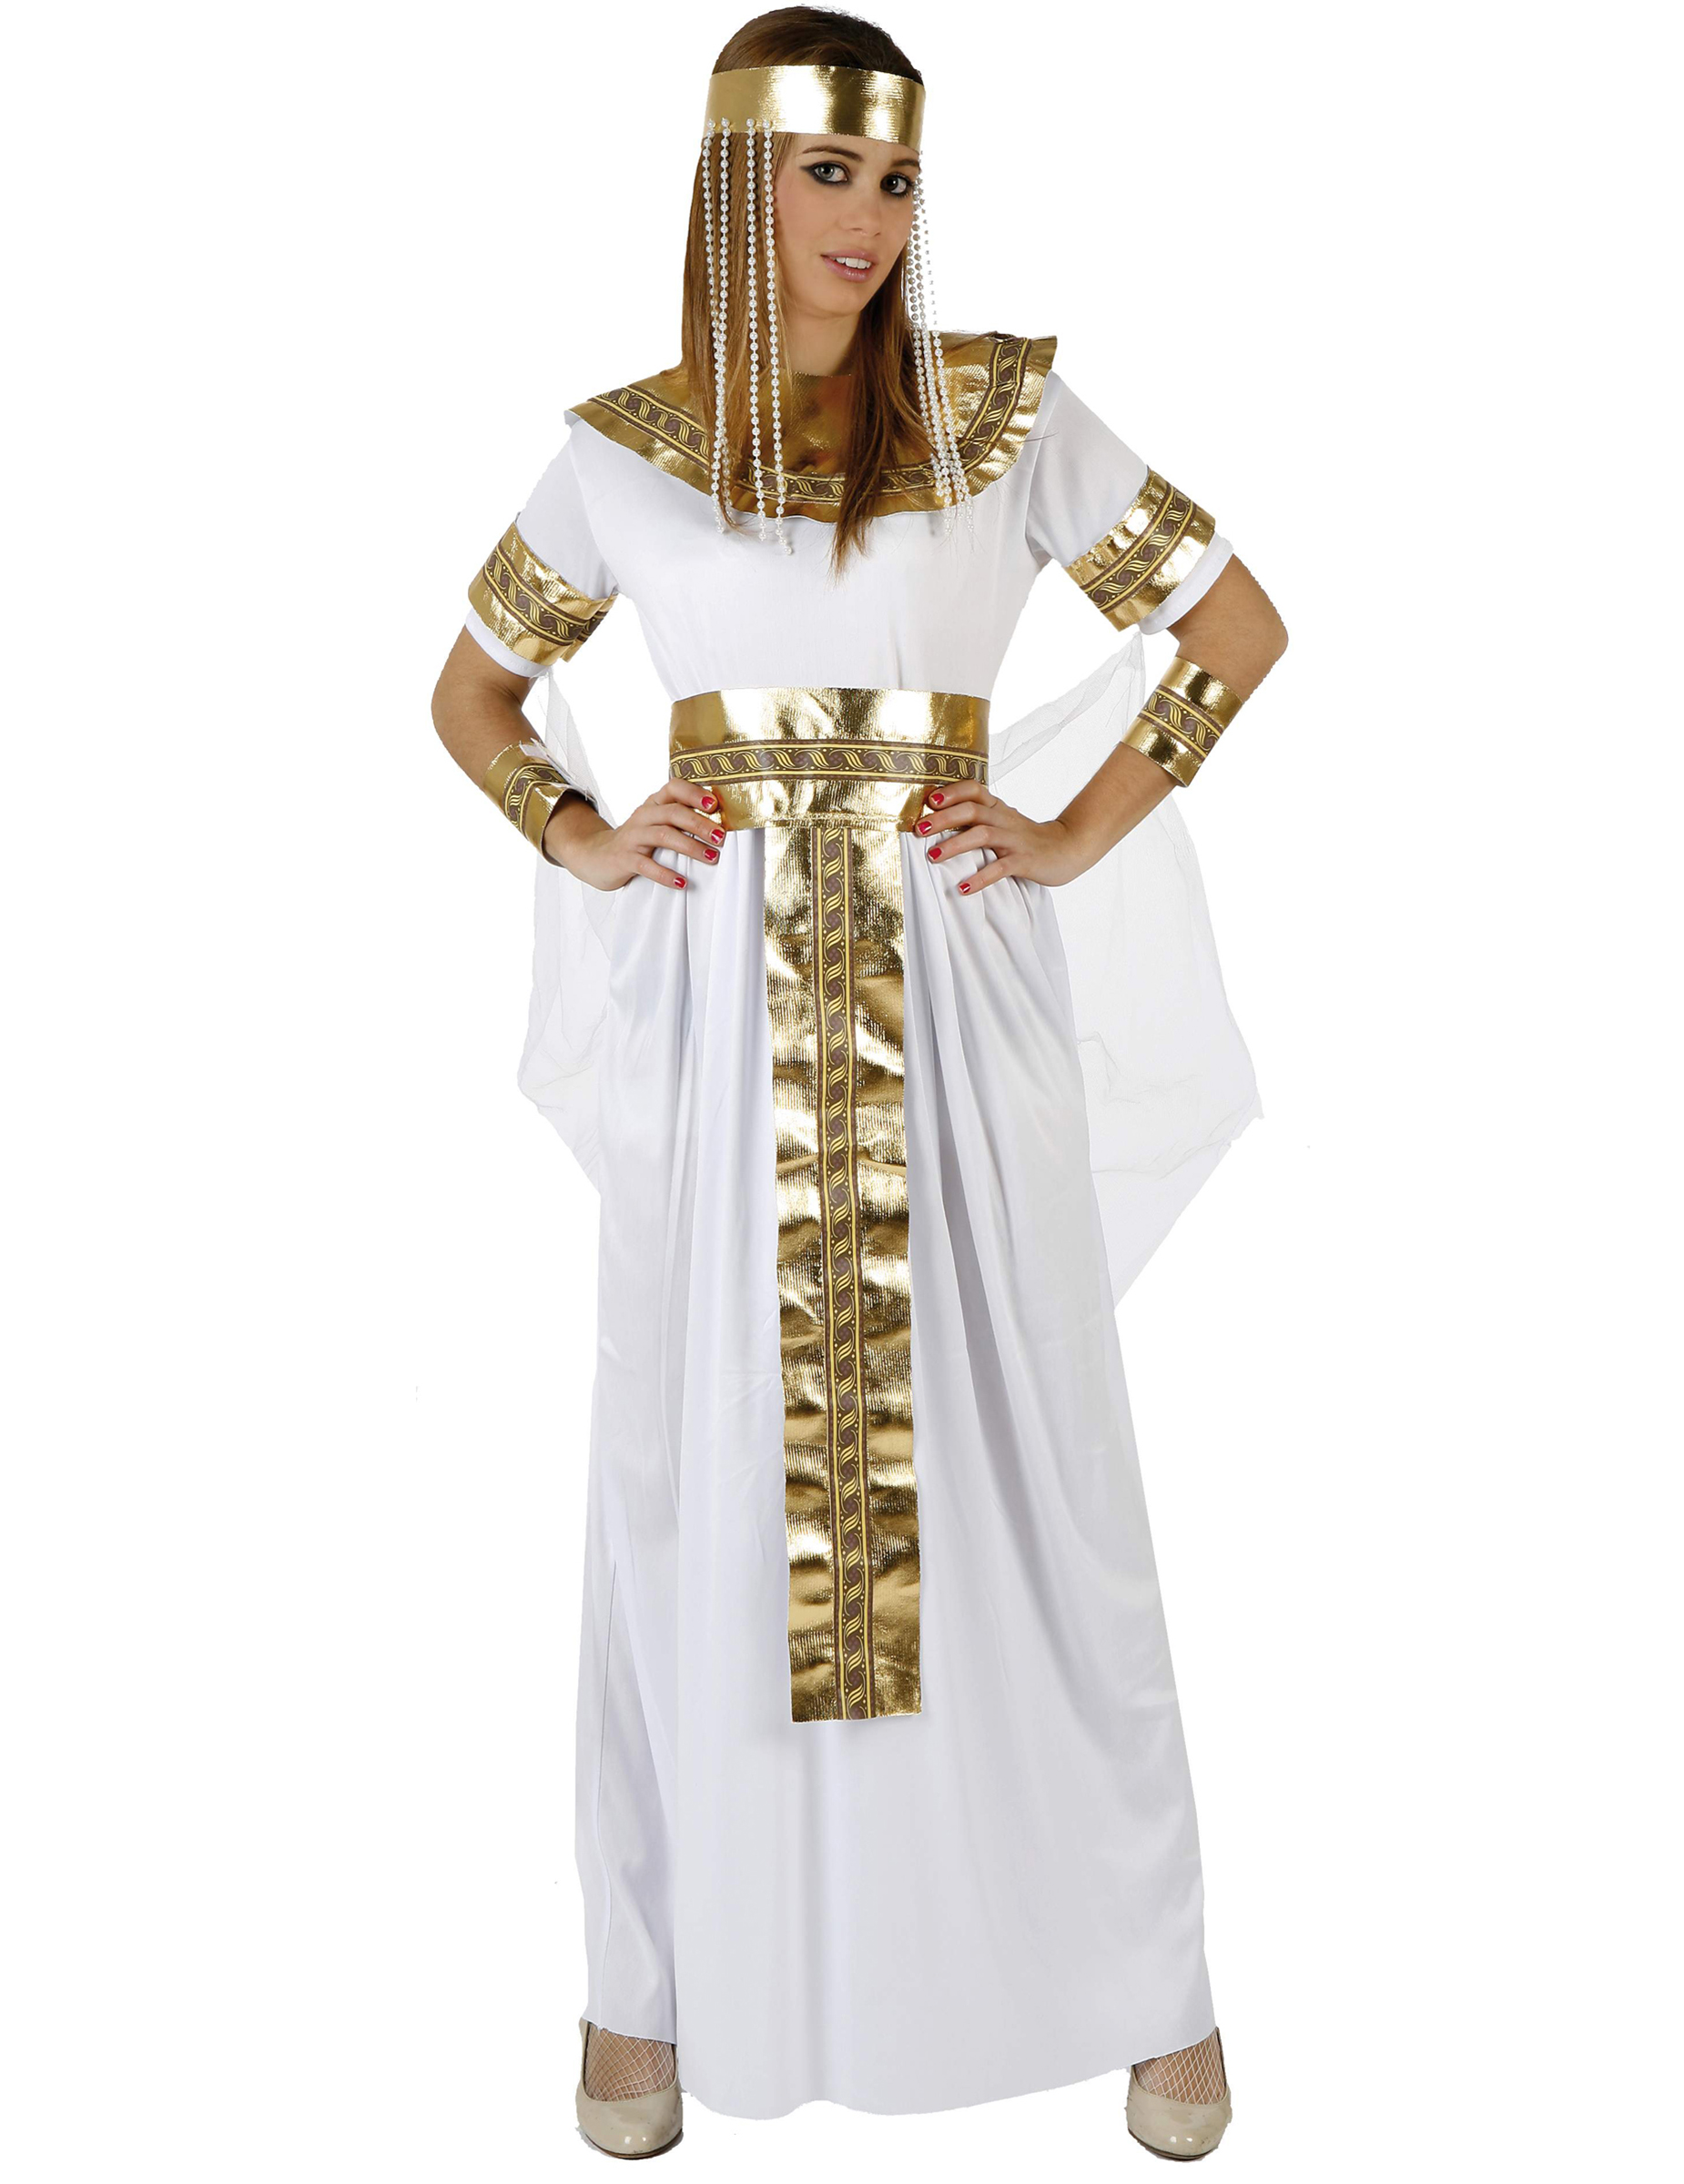 Egyptian queen costume for women - Deguisement horreur femme ...